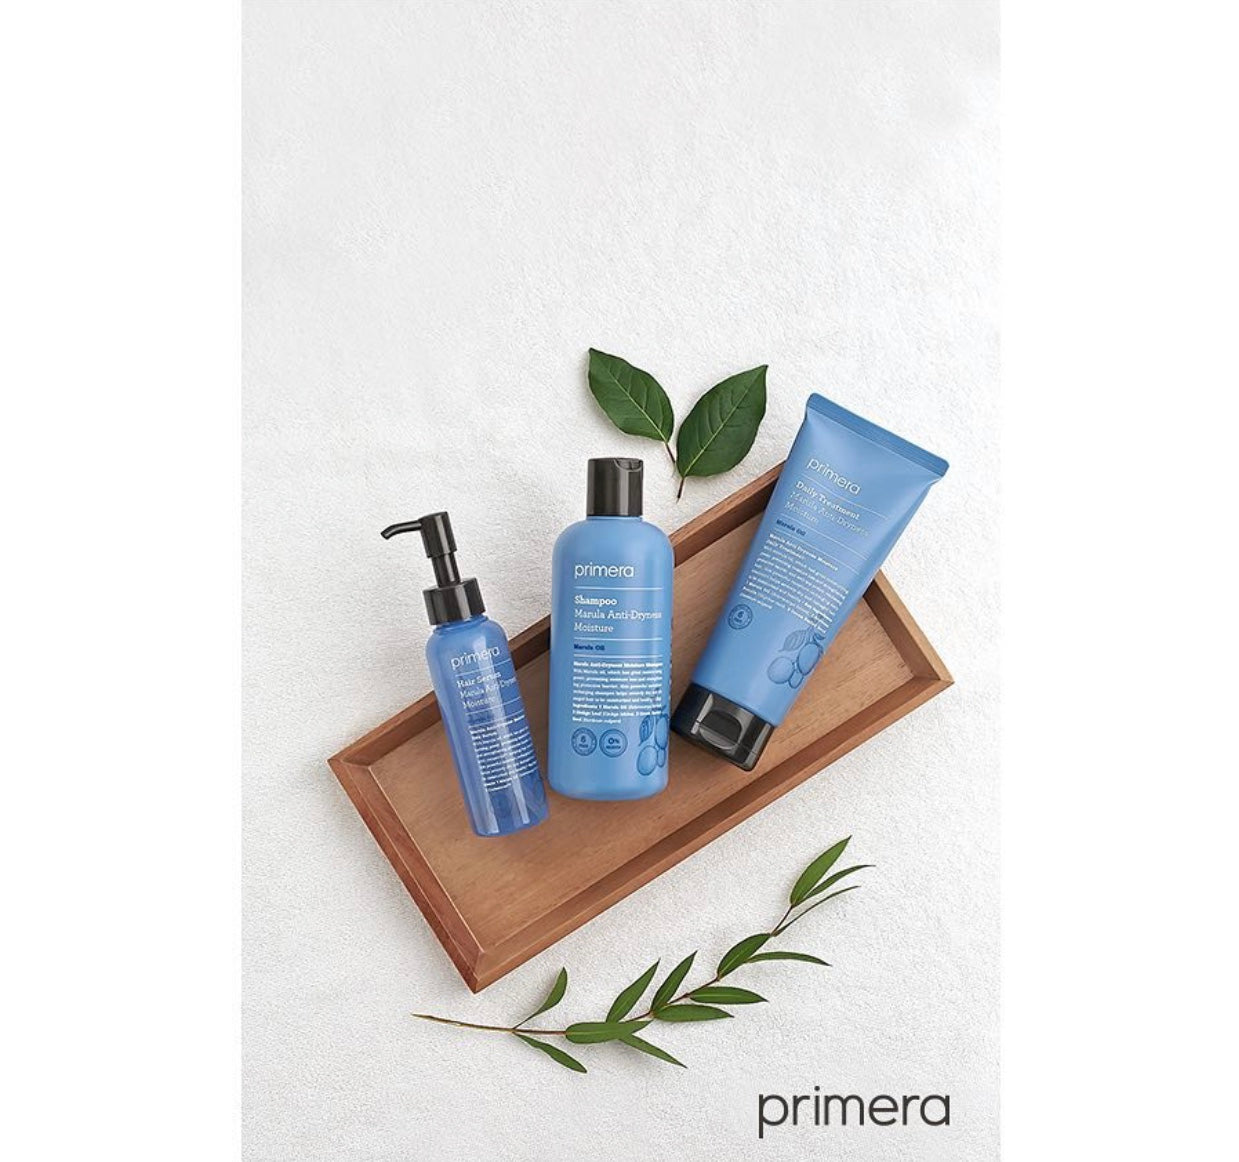 Primera Marula Anti Dryness Moisture Daily Treatment 200ml - whoami